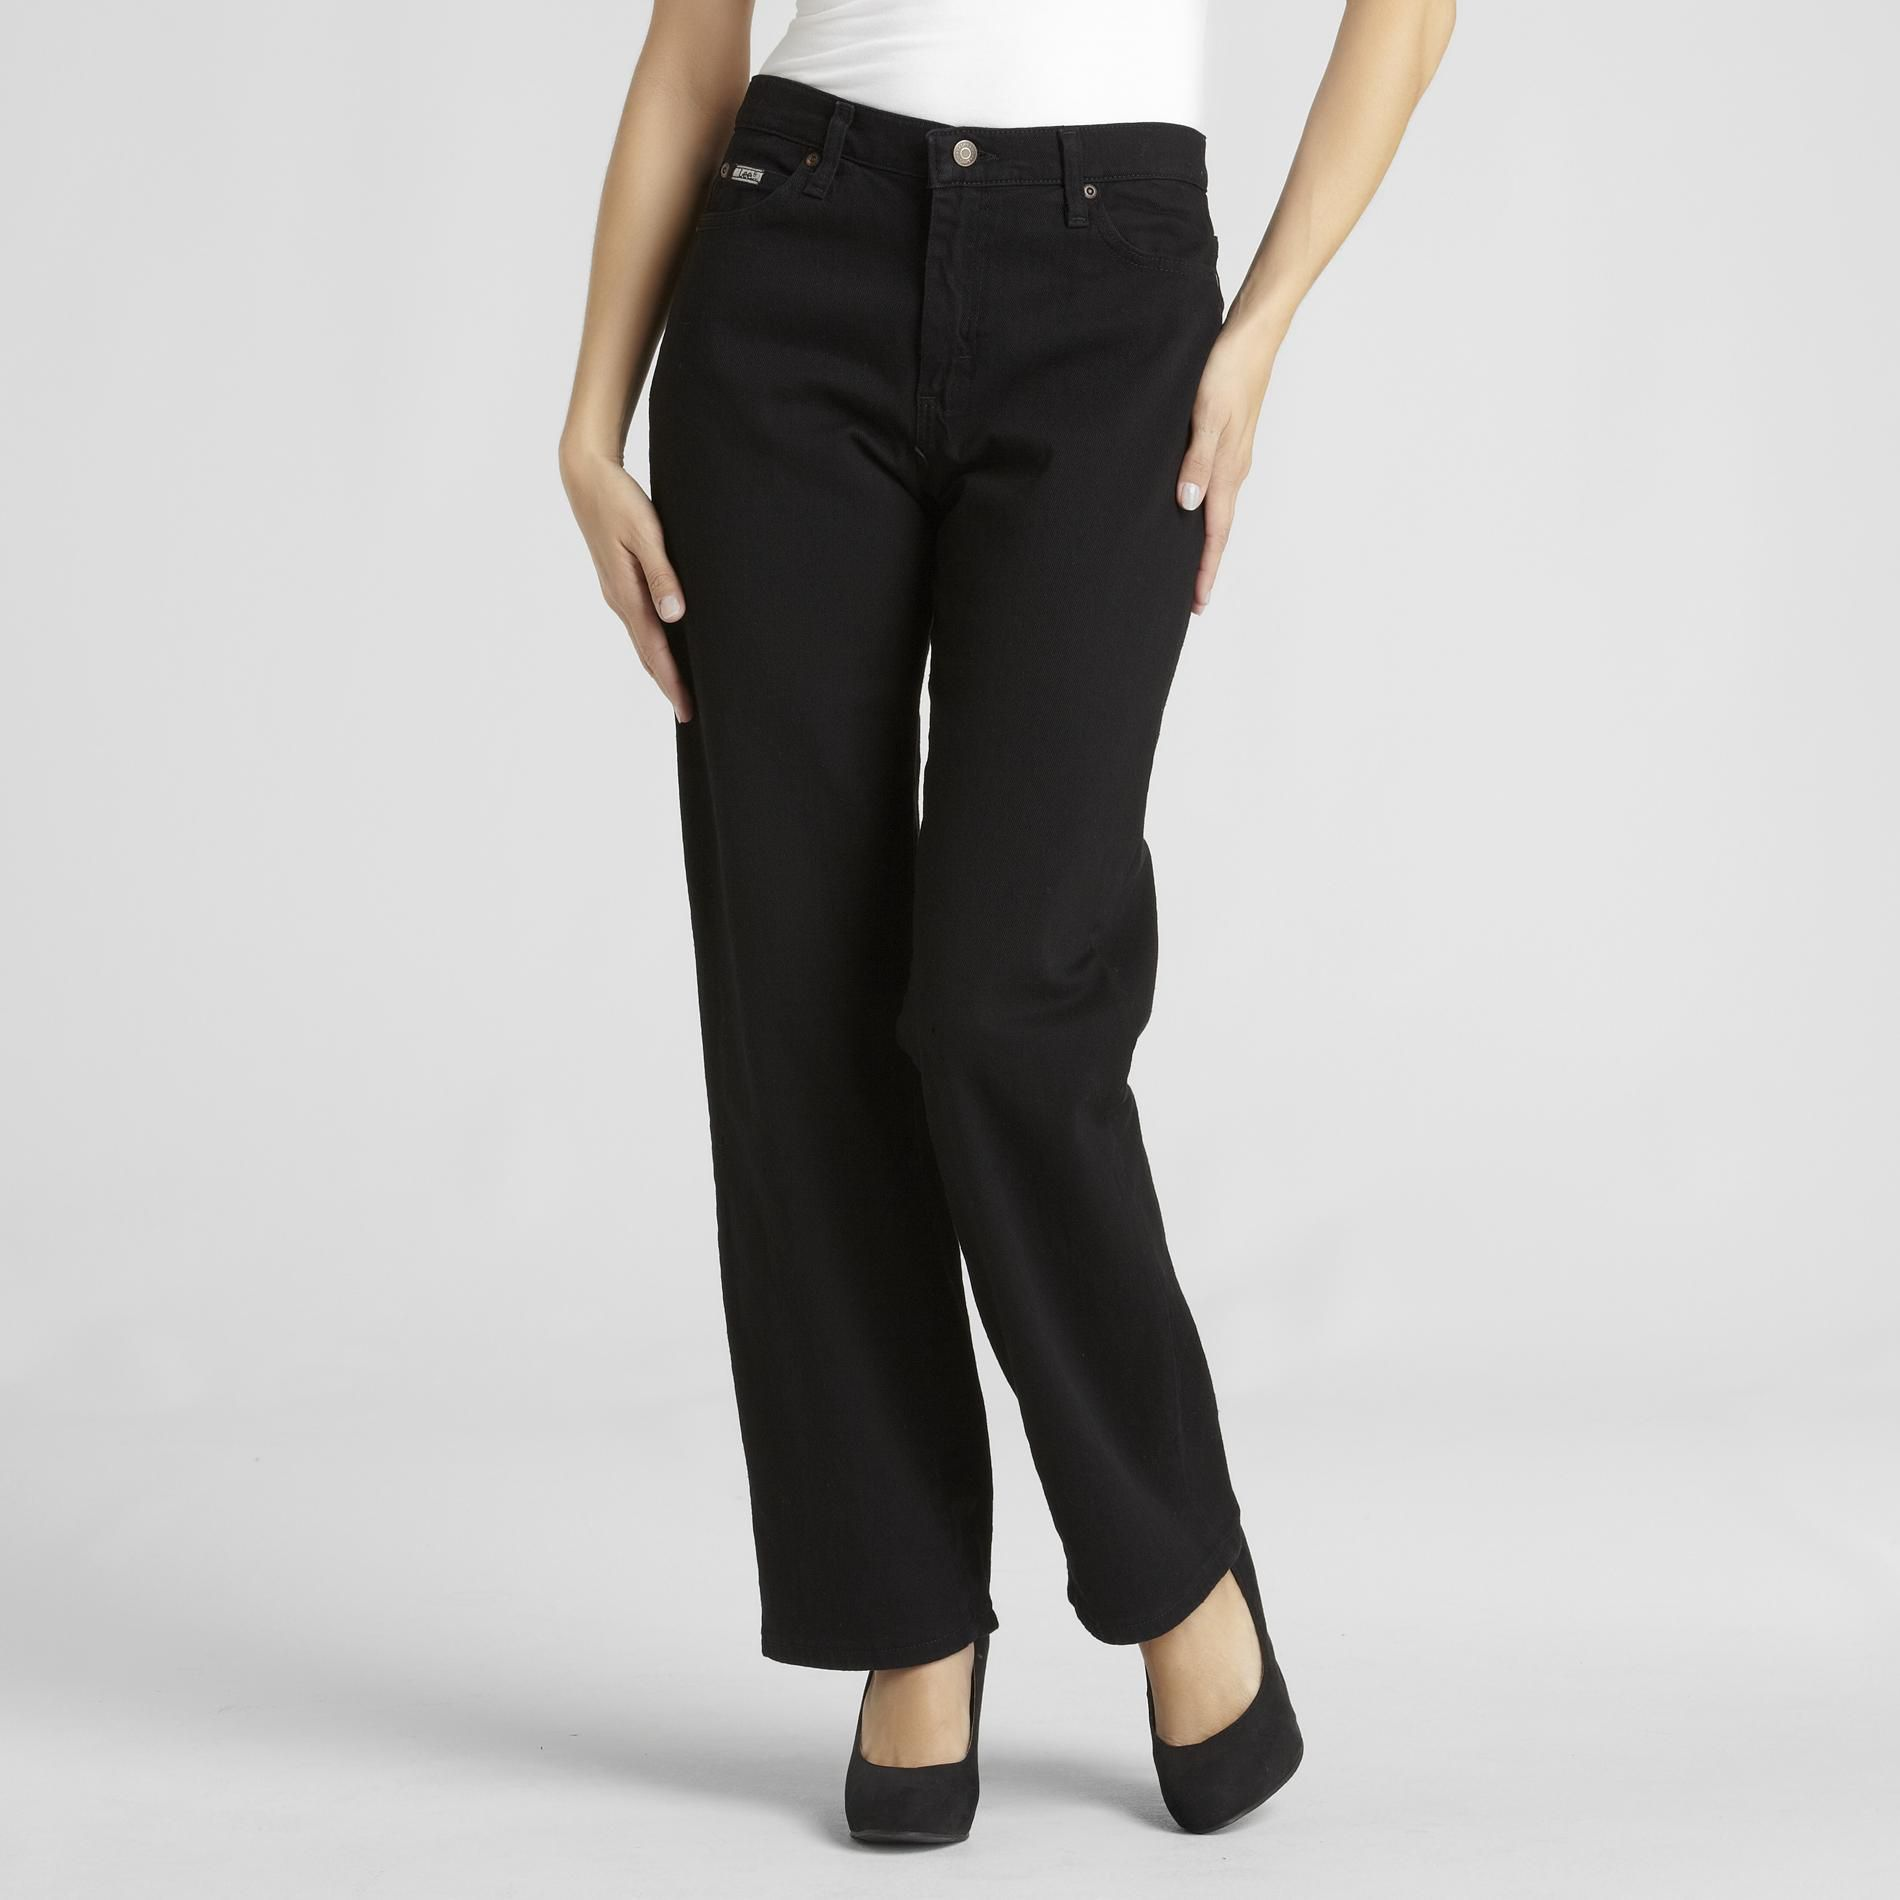 LEE Women's Relaxed-Fit Jeans at Sears.com